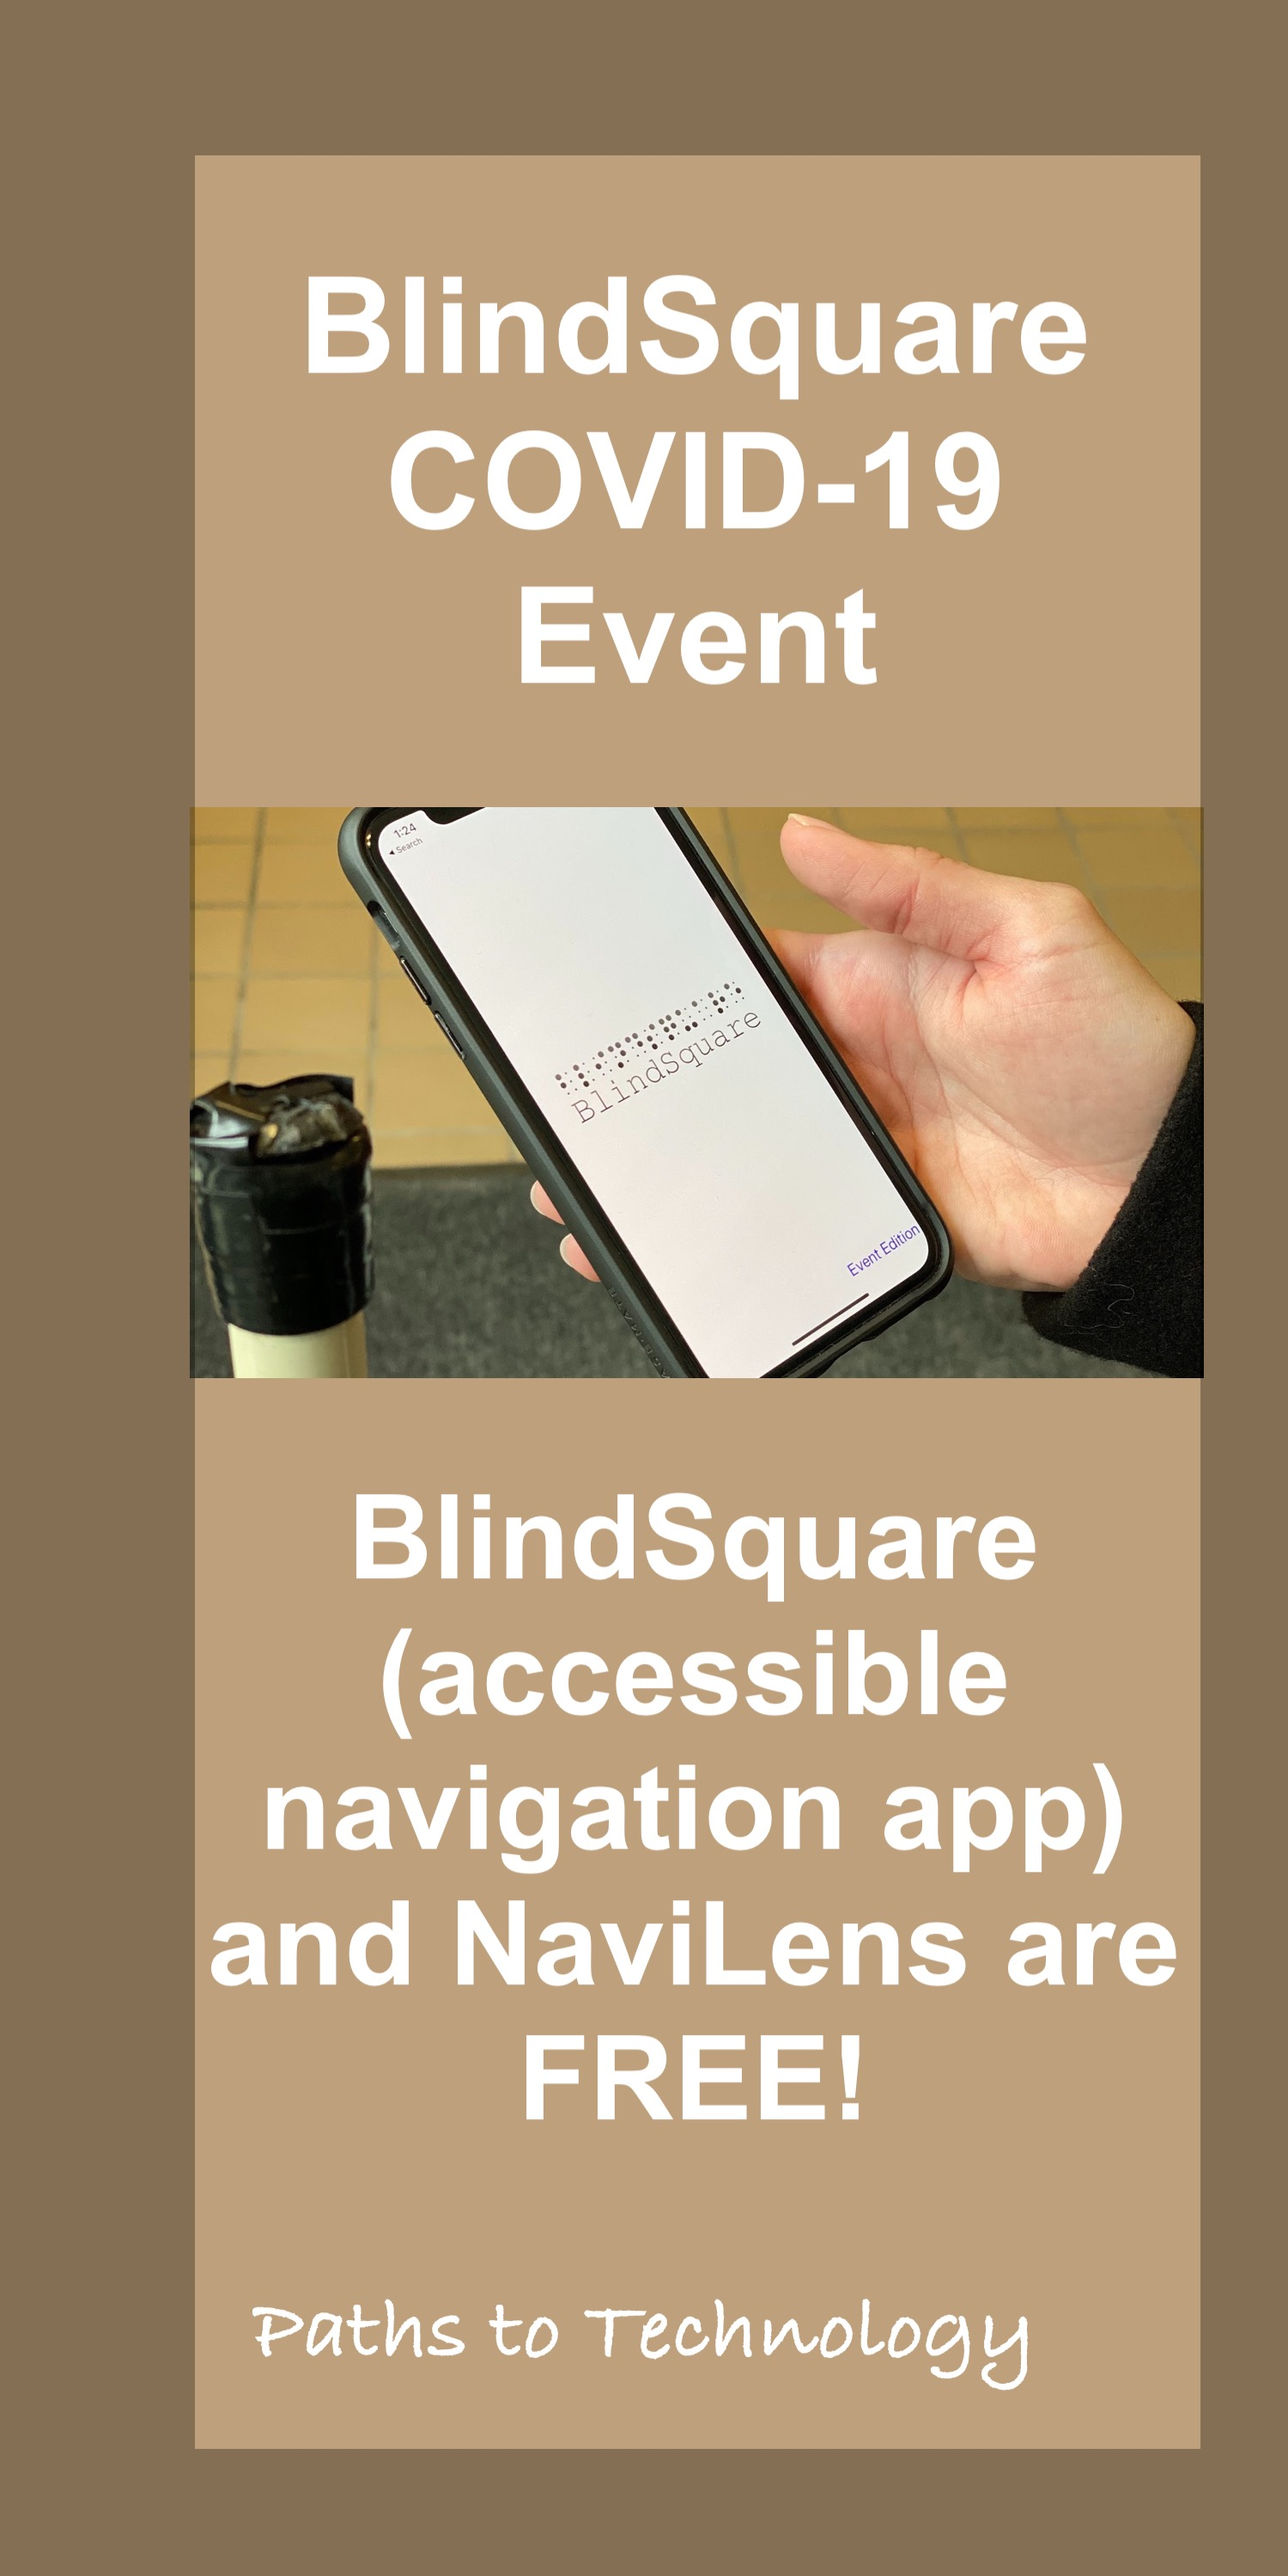 BlindSquare EVENT COVID-19 Pin